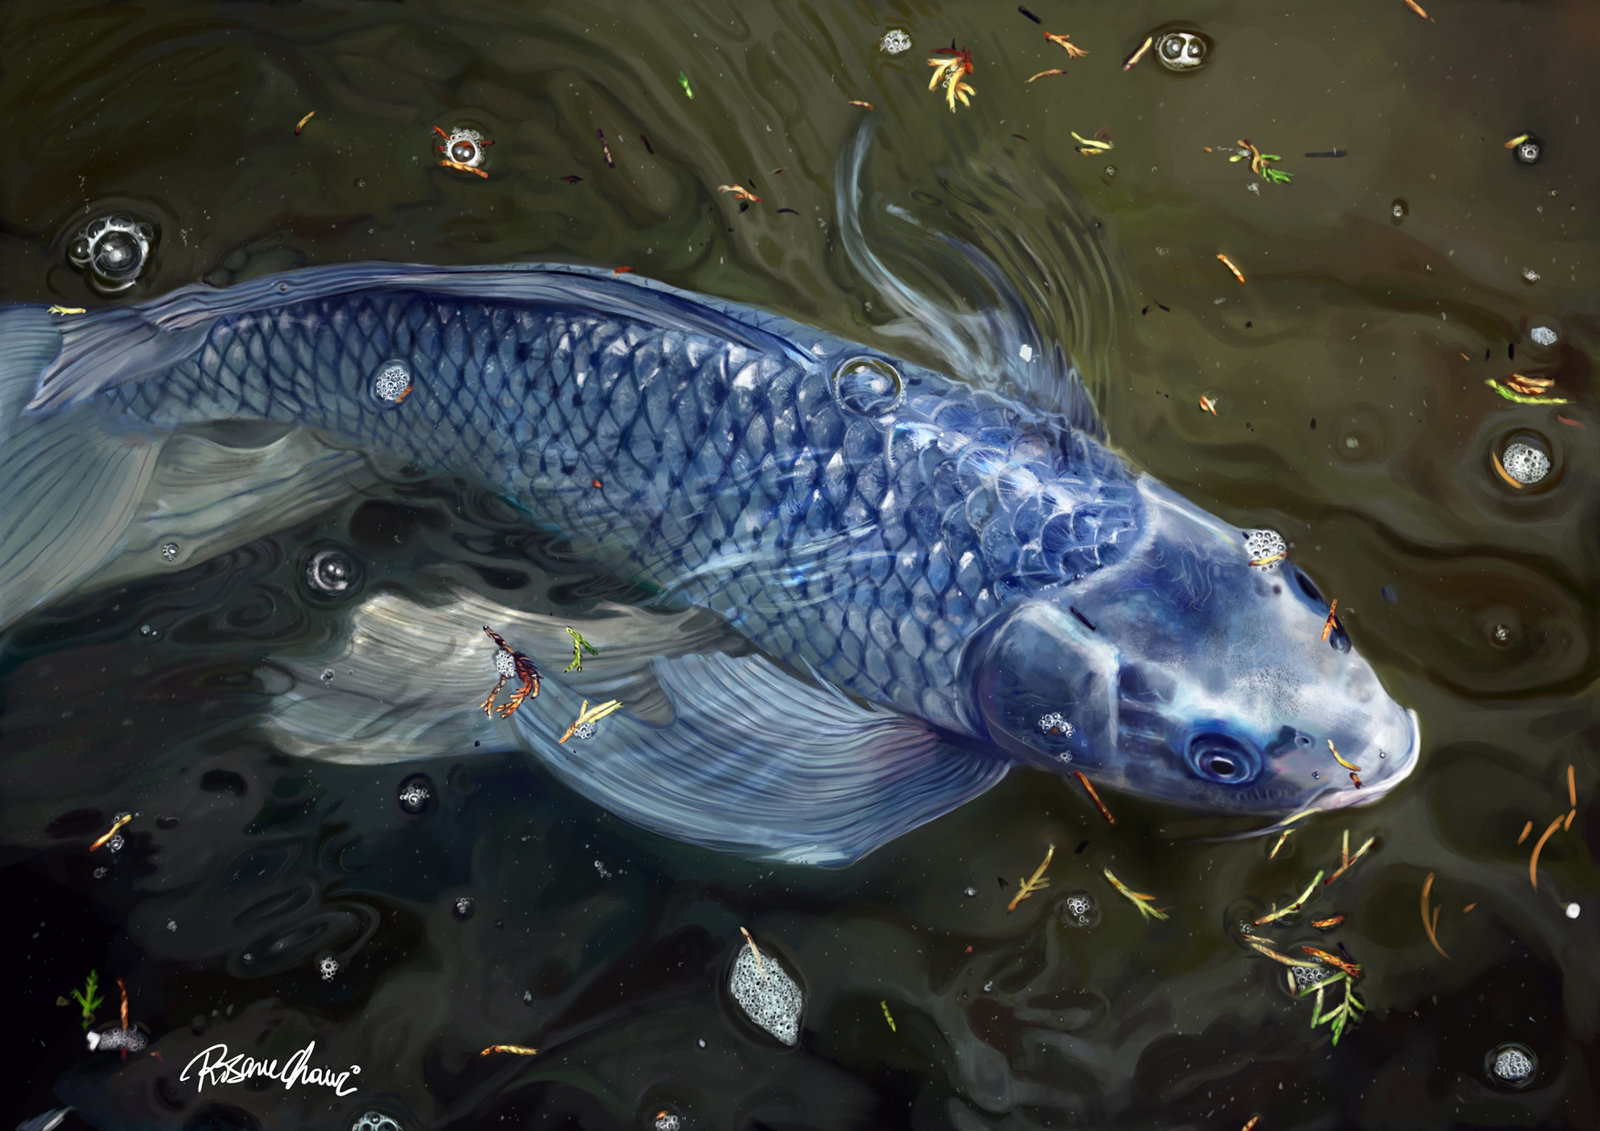 Collection nature 39 s show fish by techgnotic on deviantart for Koi goldfisch